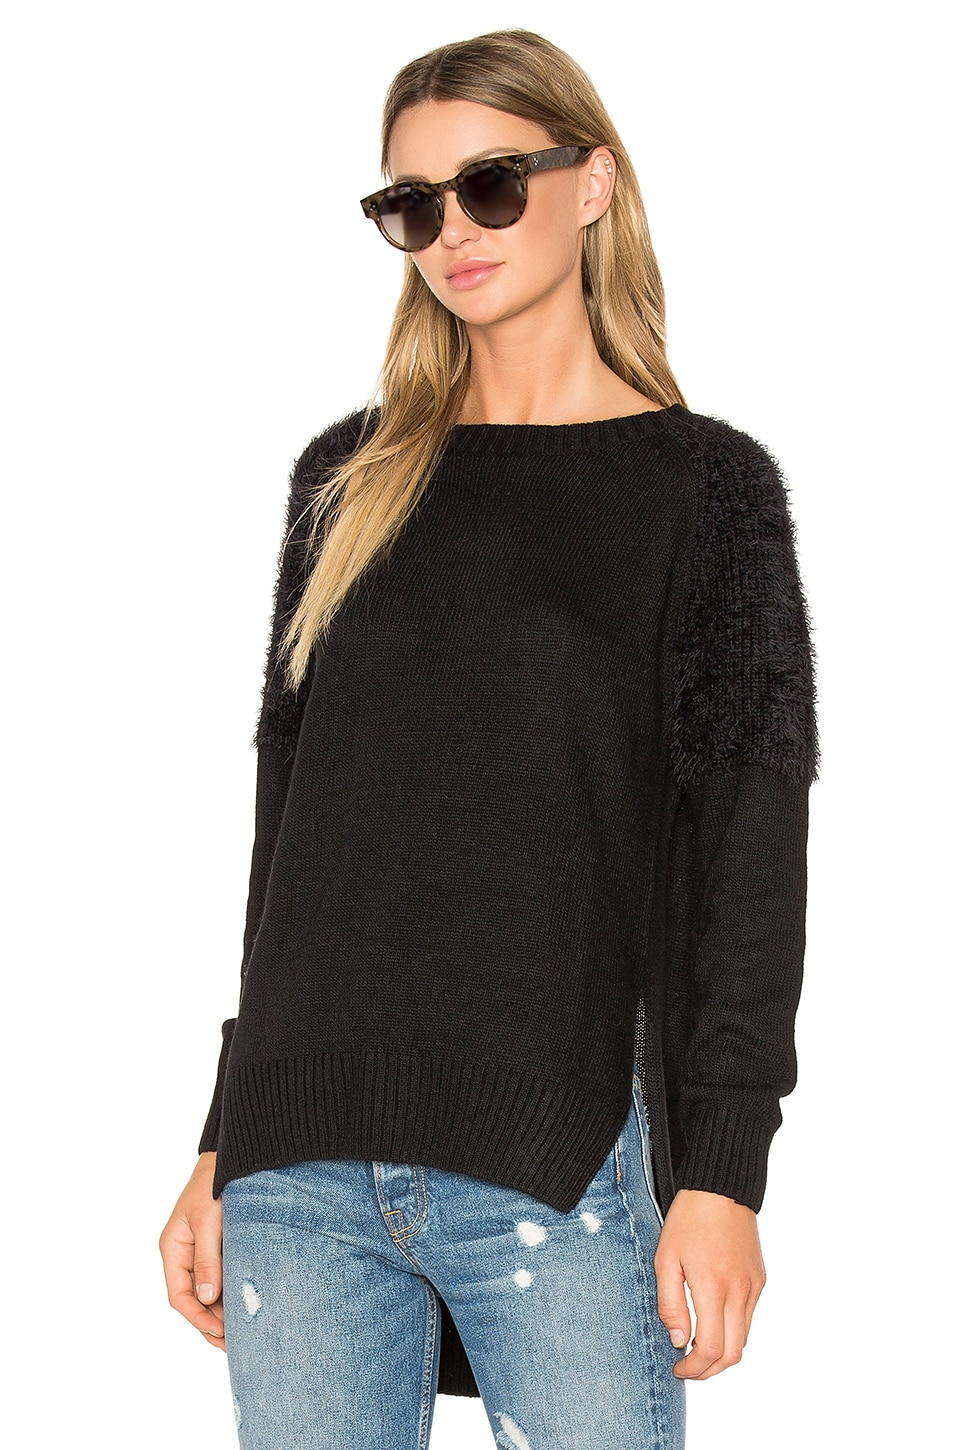 Cypress Sweater by Line & Dot